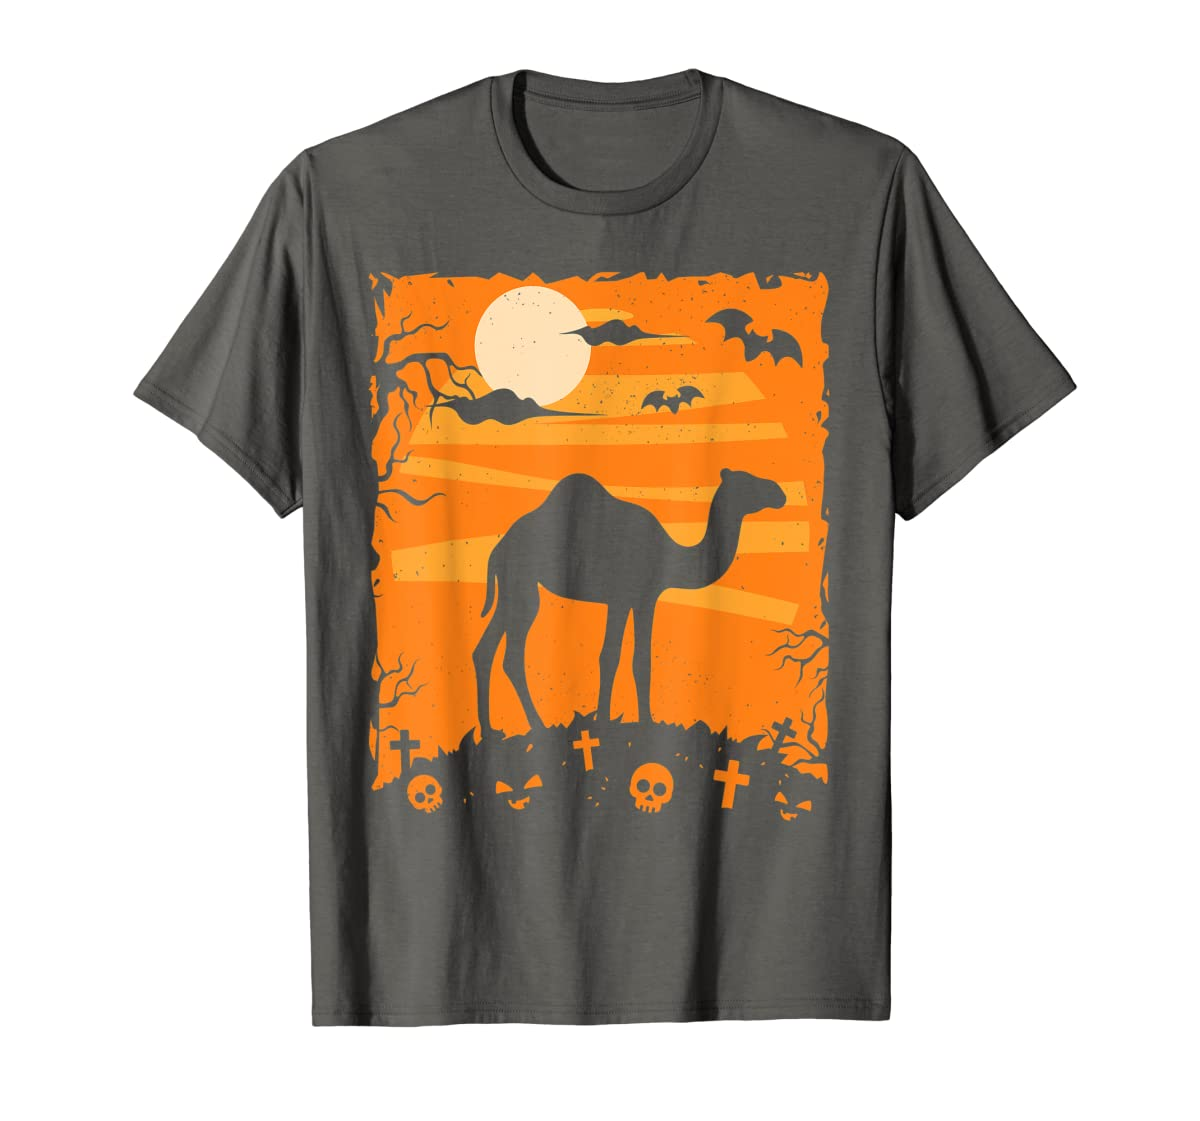 Camel Halloween Costume Animal Funny Pumpkin Outfit Gift T-Shirt-Men's T-Shirt-Dark Heather